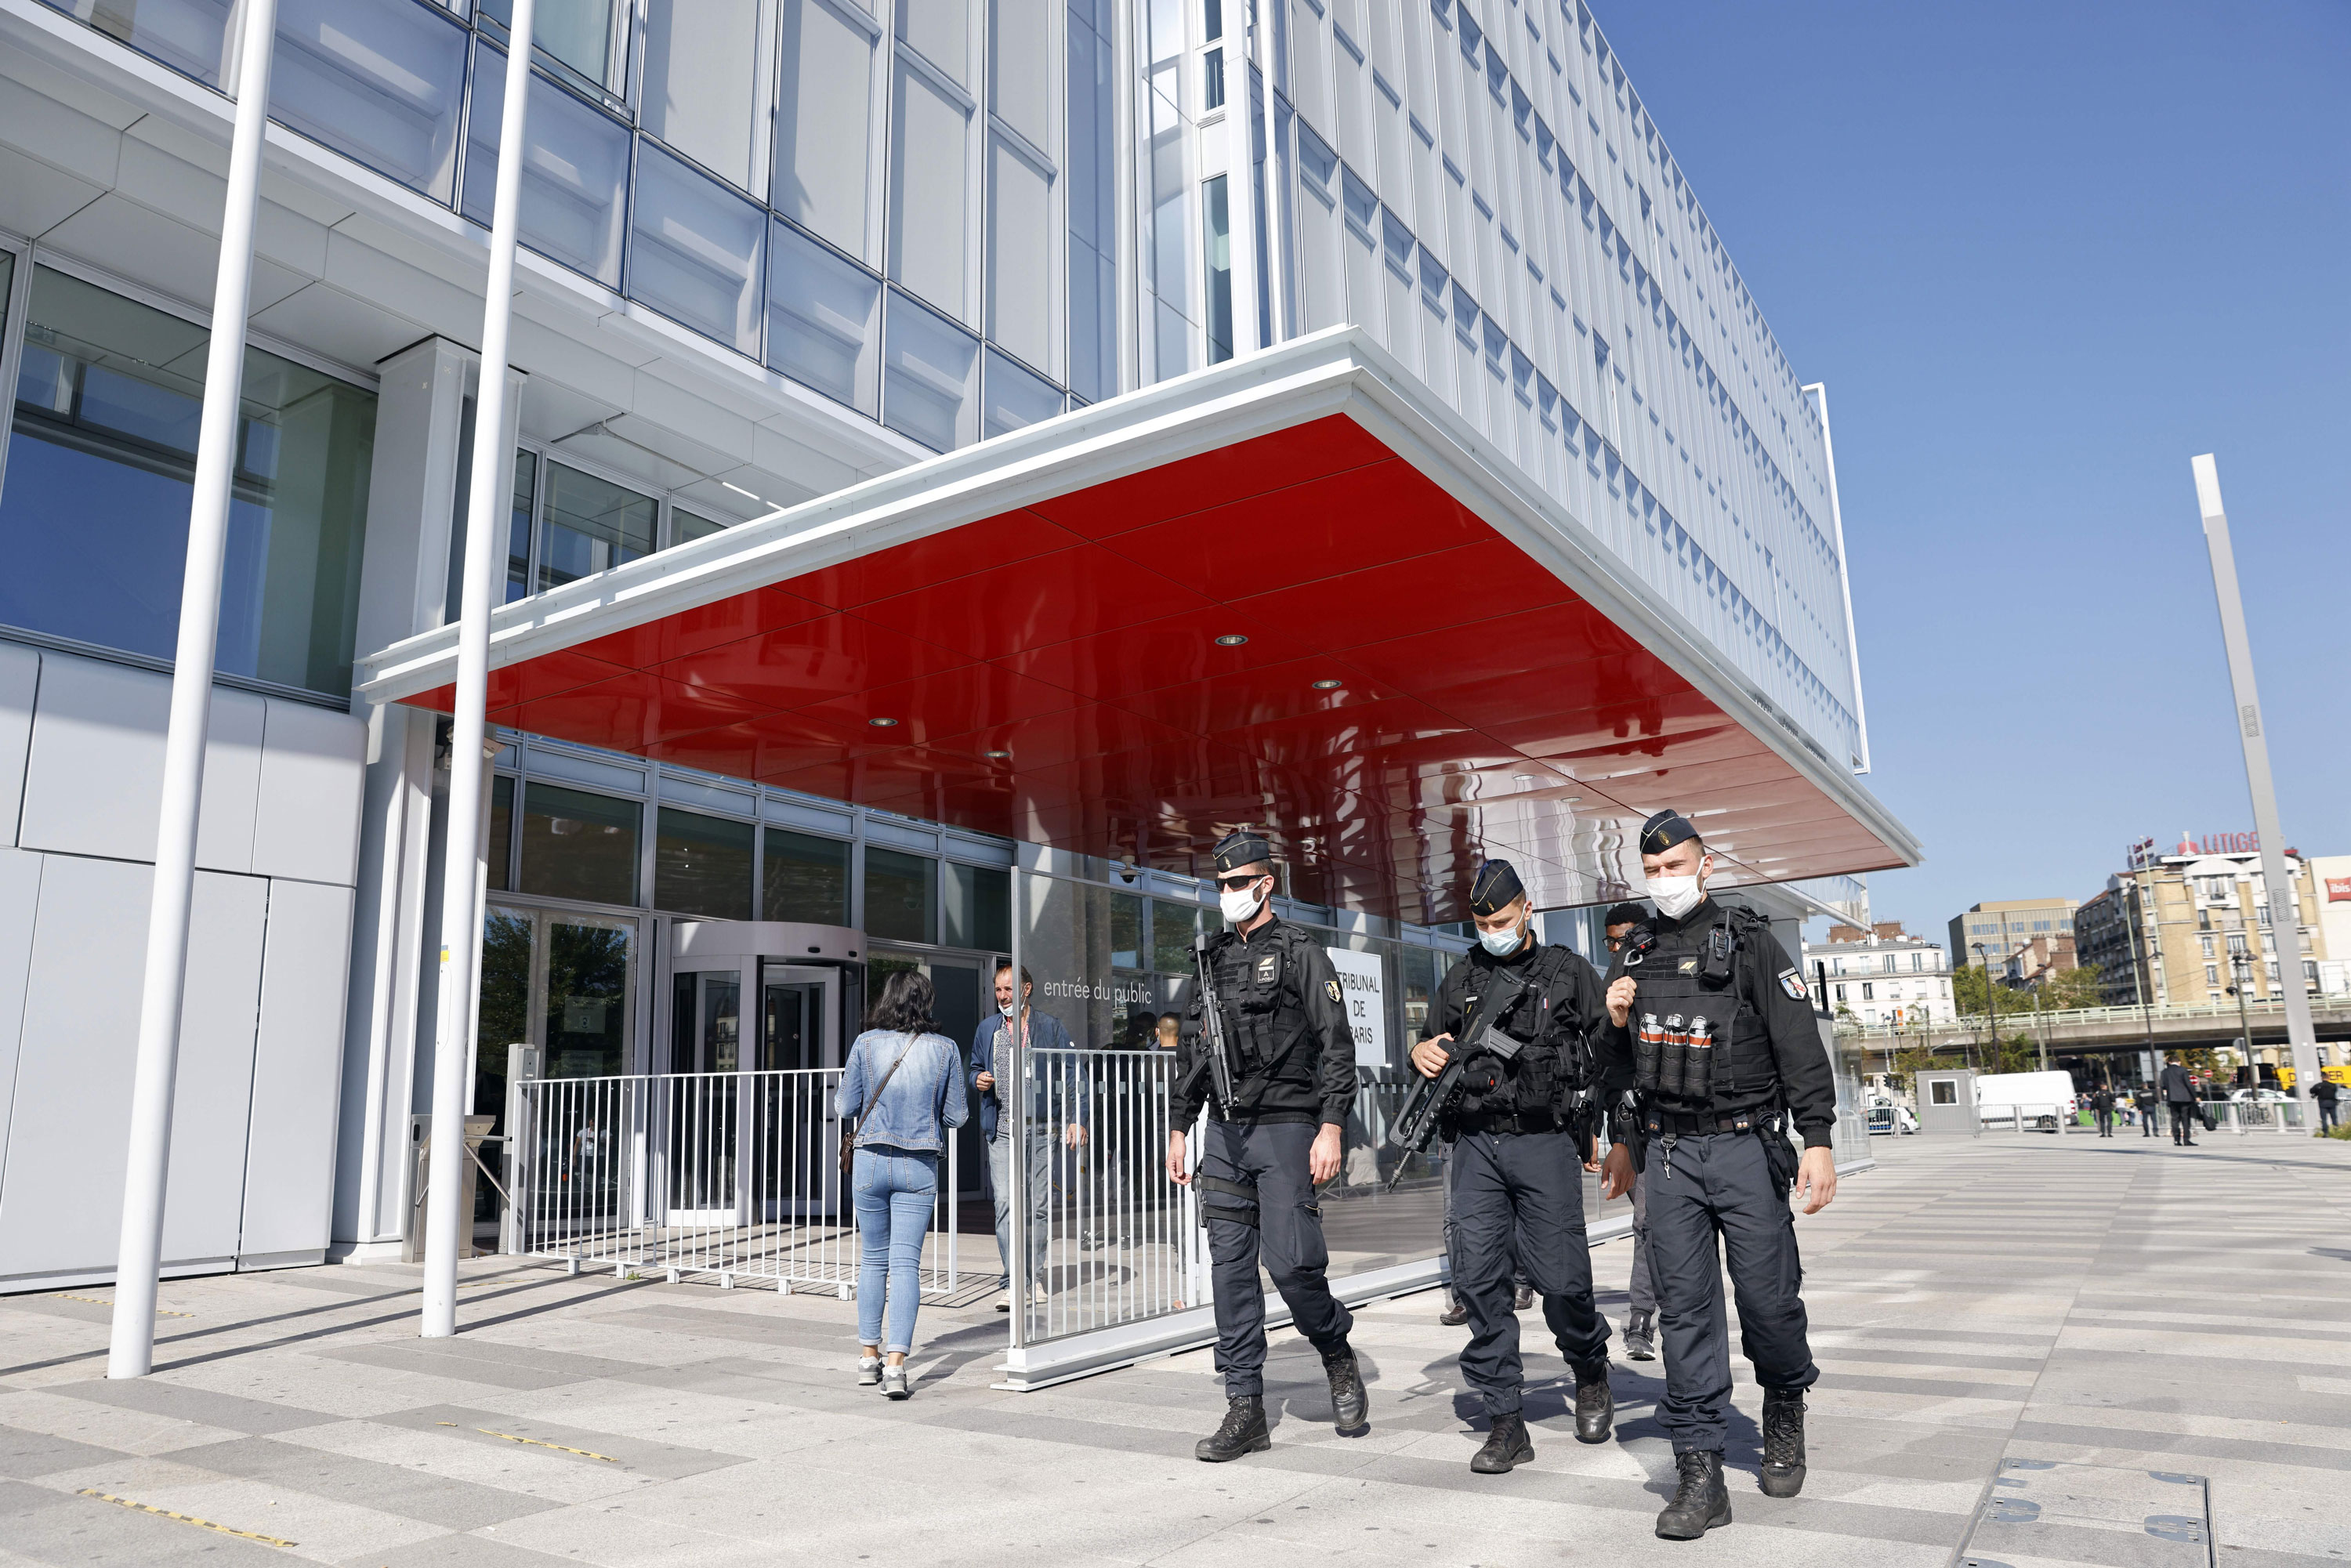 Police officers patrol outside Paris' courthouse, on September 2, the opening day of the trial of 14 suspected accomplices in the Charlie Hebdo attack.